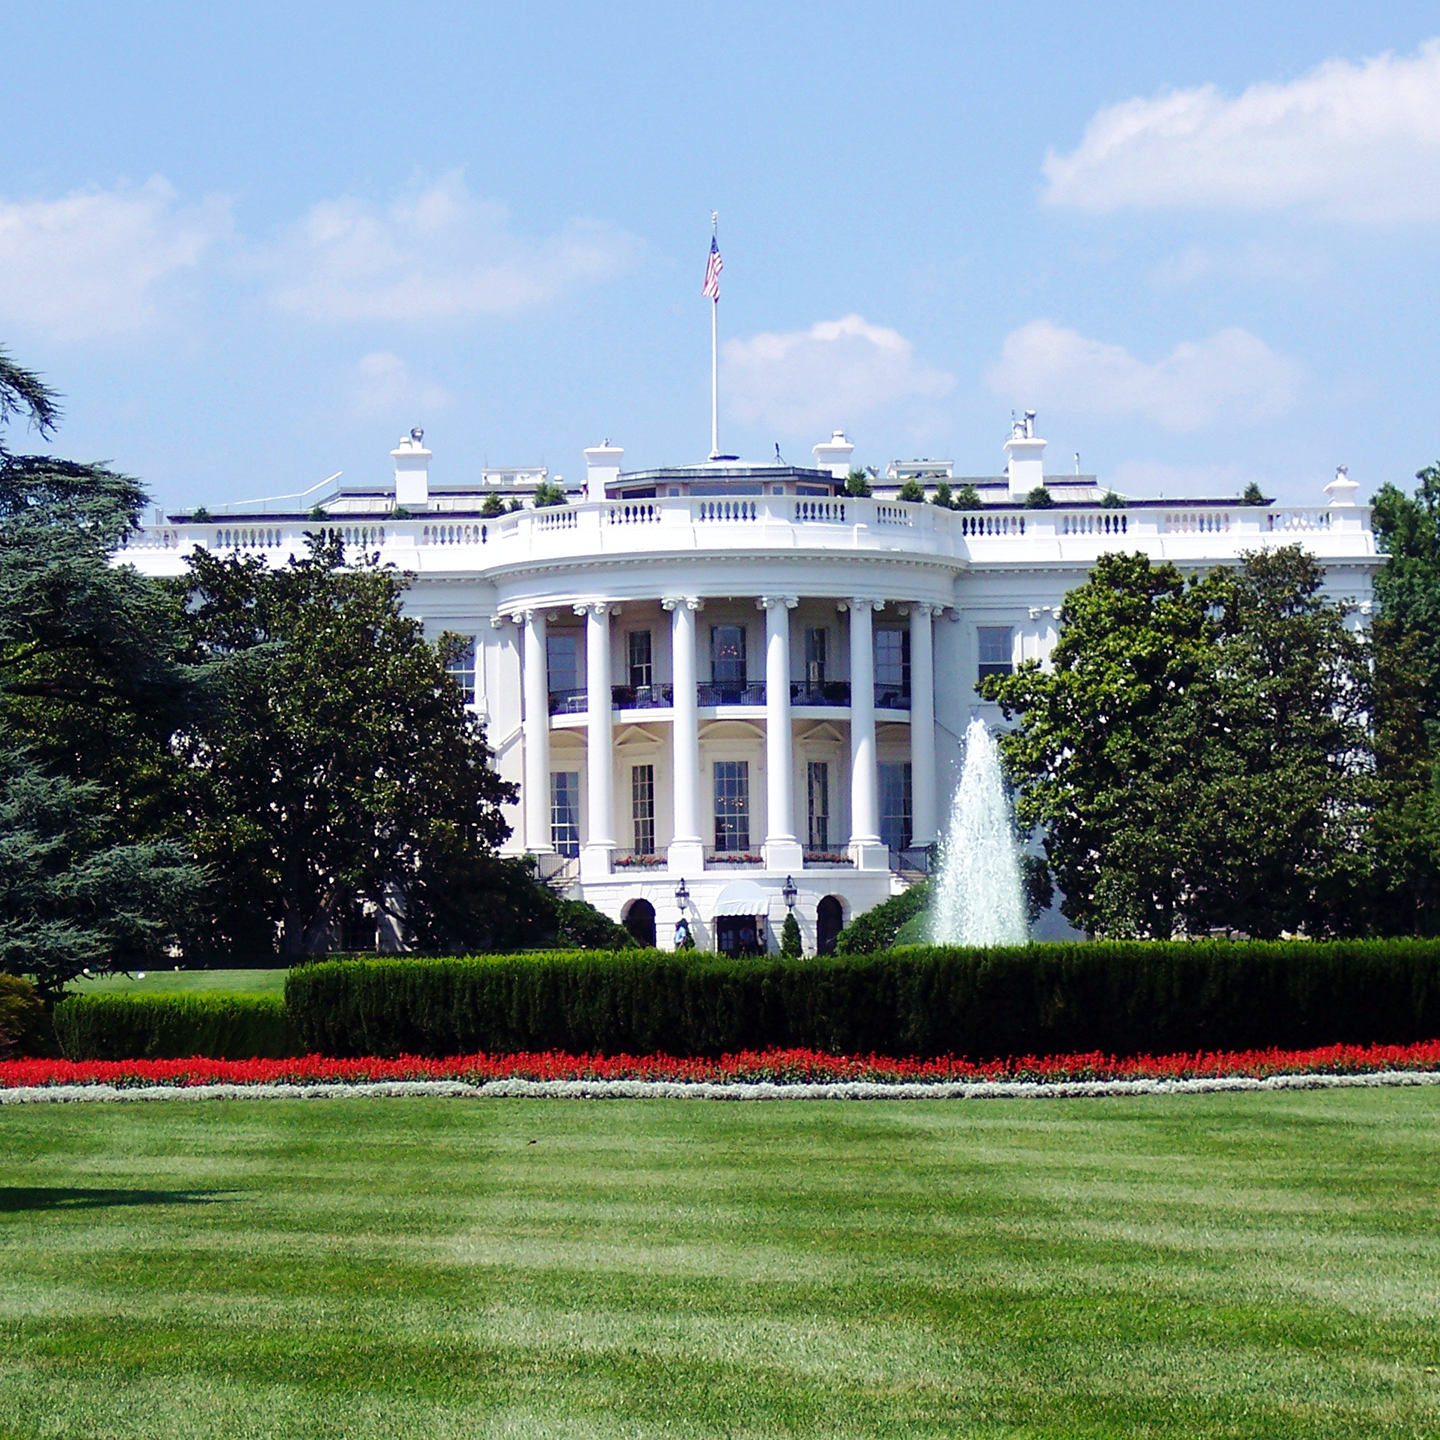 White House in D.C.